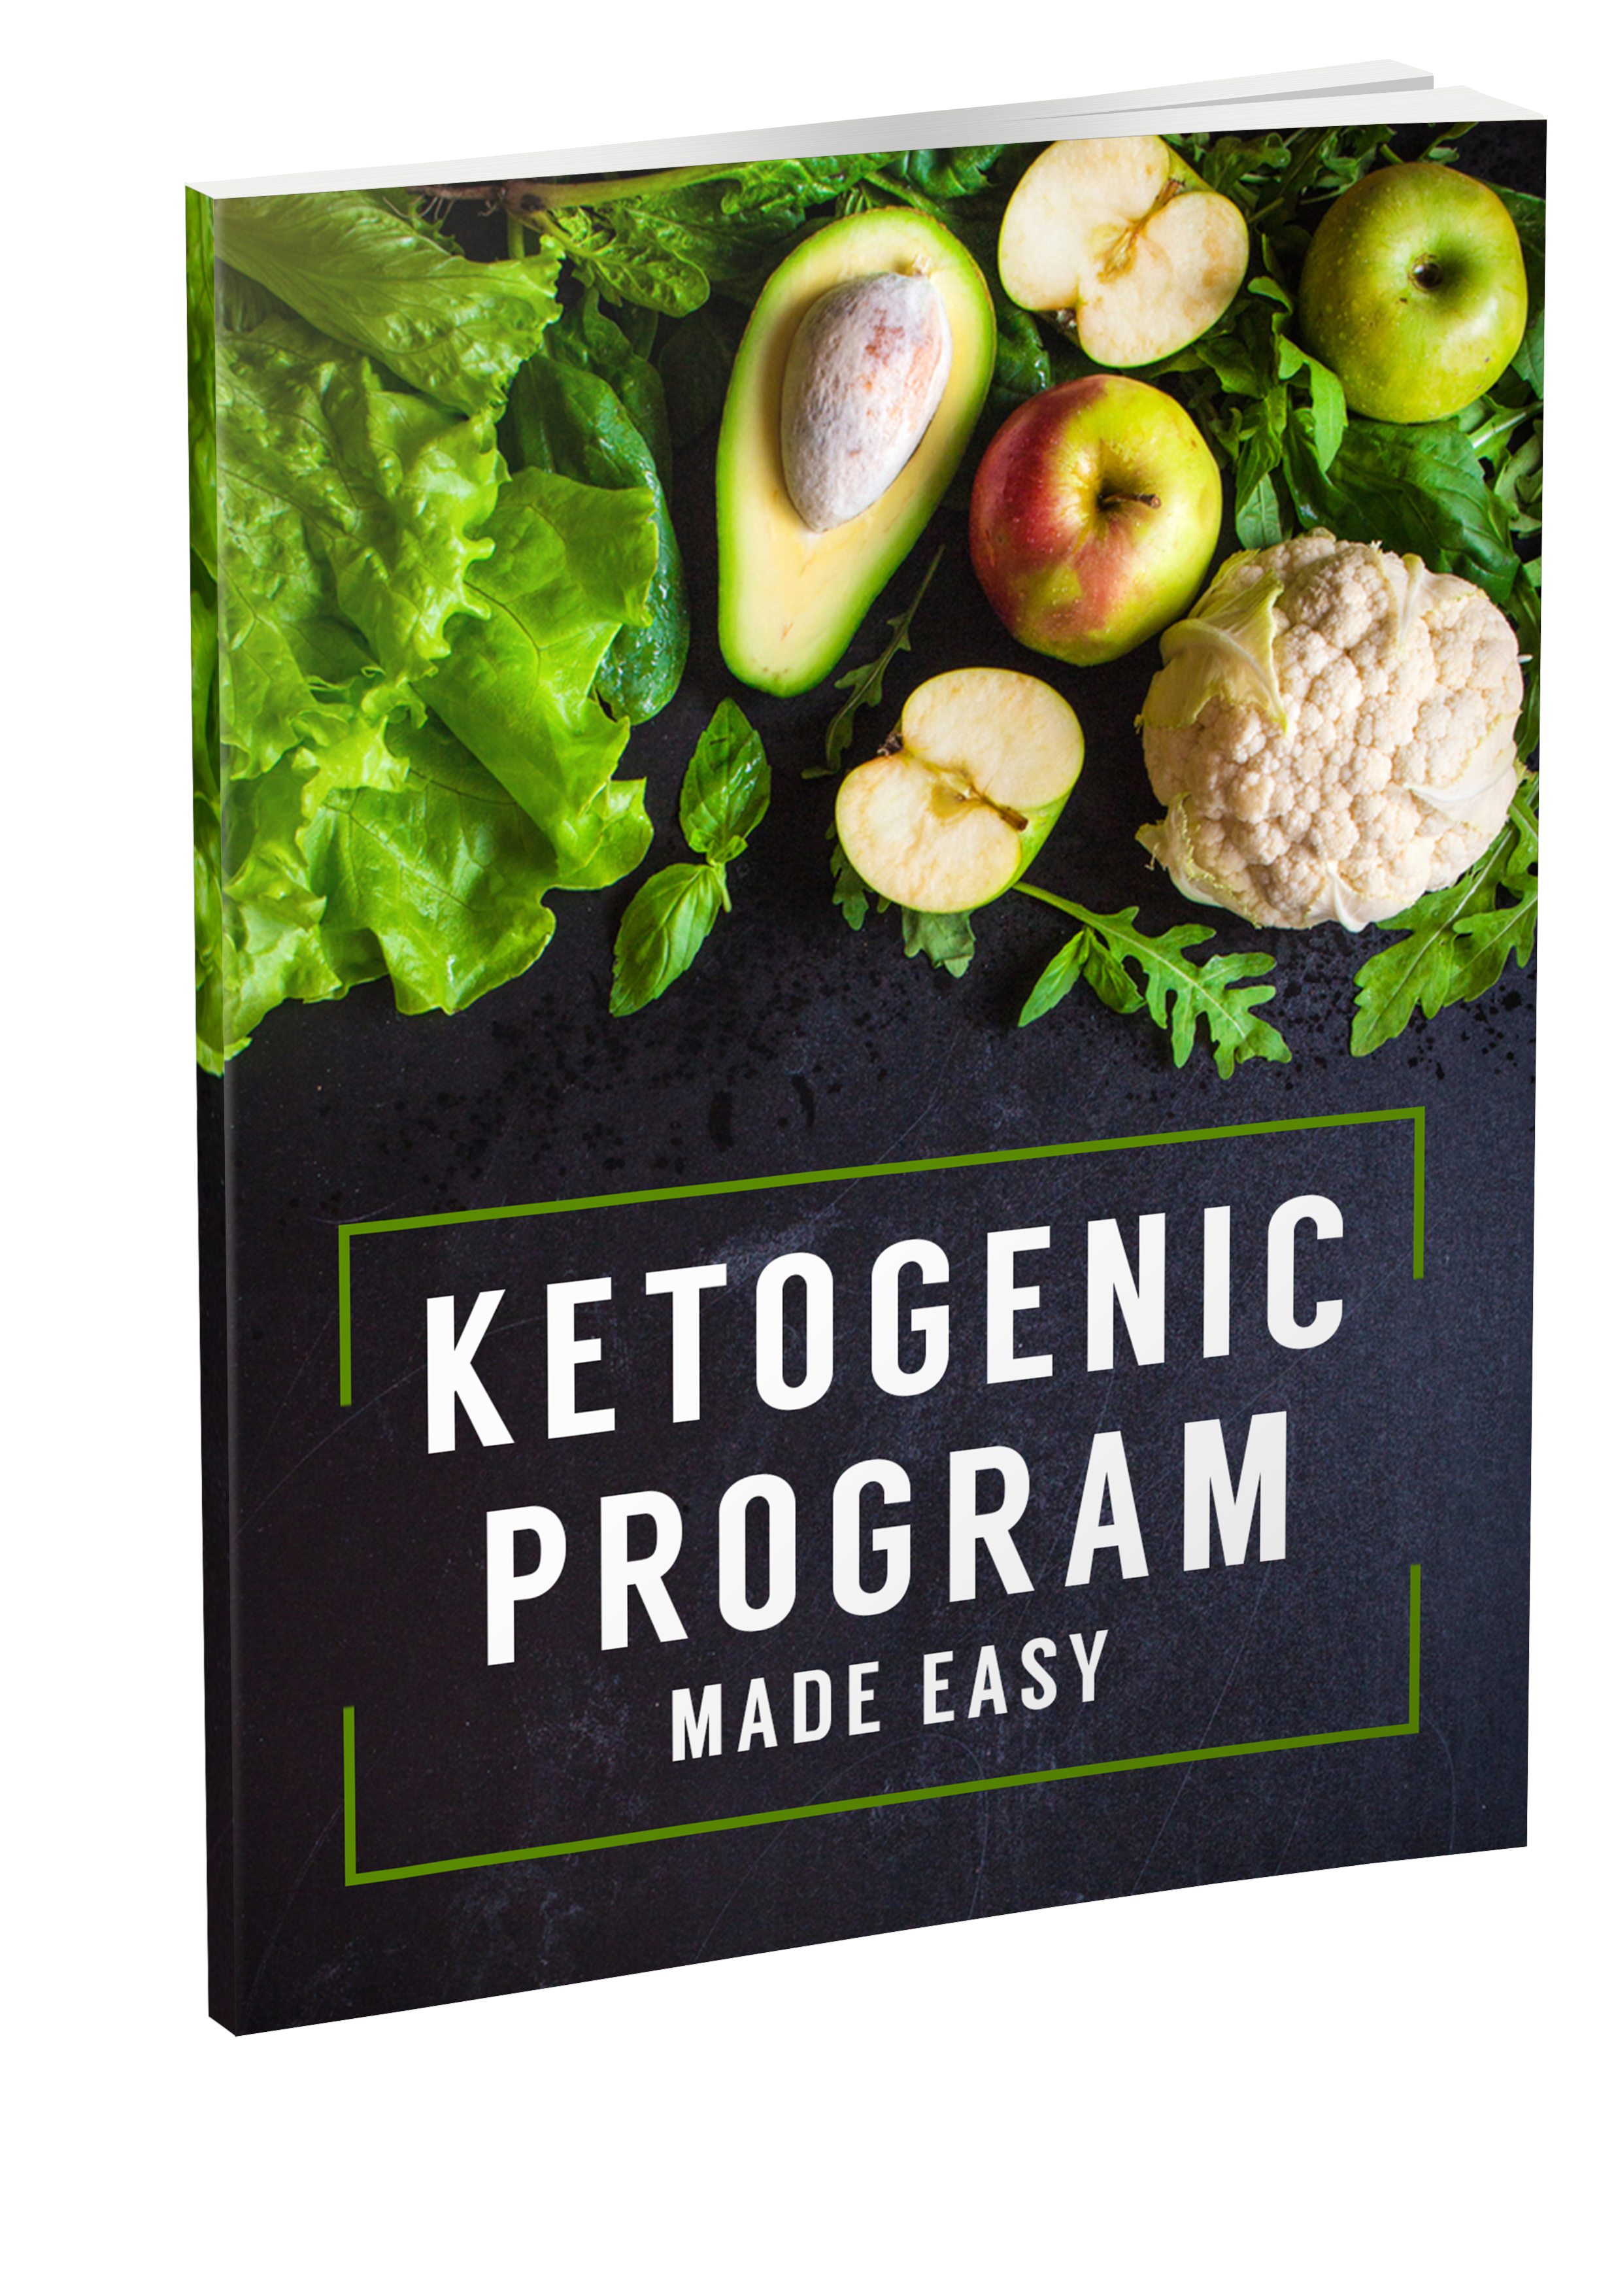 Get ready to enjoy delicious, easy-to-prepare recipes that will leave you feeling amazing and satisfied.This program is worth $297 but you get all of this for just $87! - Intro price. Get it now while you can.